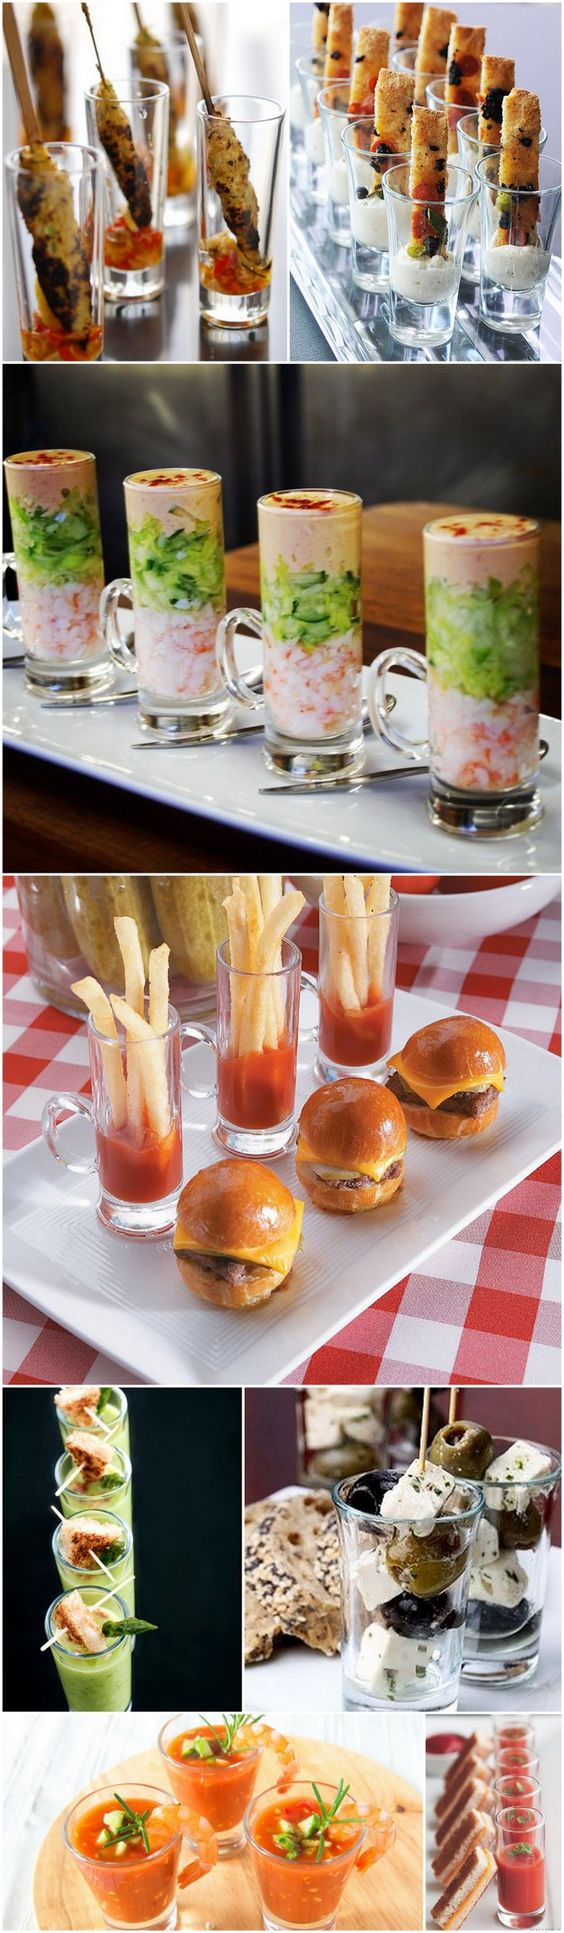 Wedding canap ideas canap s in shot glasses ideias for How to make canape shells